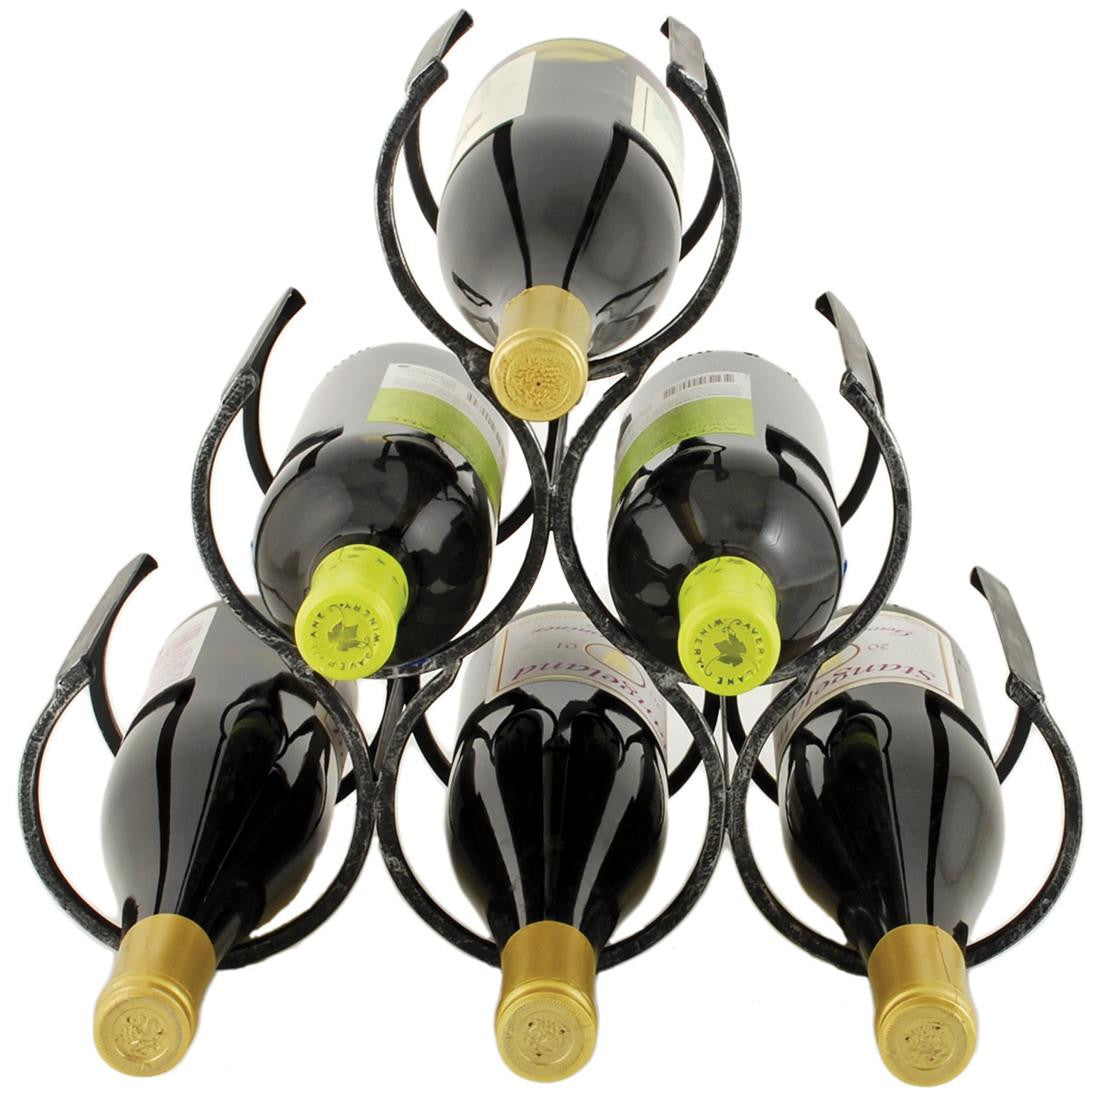 Country Home Wine Shrine 6 Bottle Rack - Black